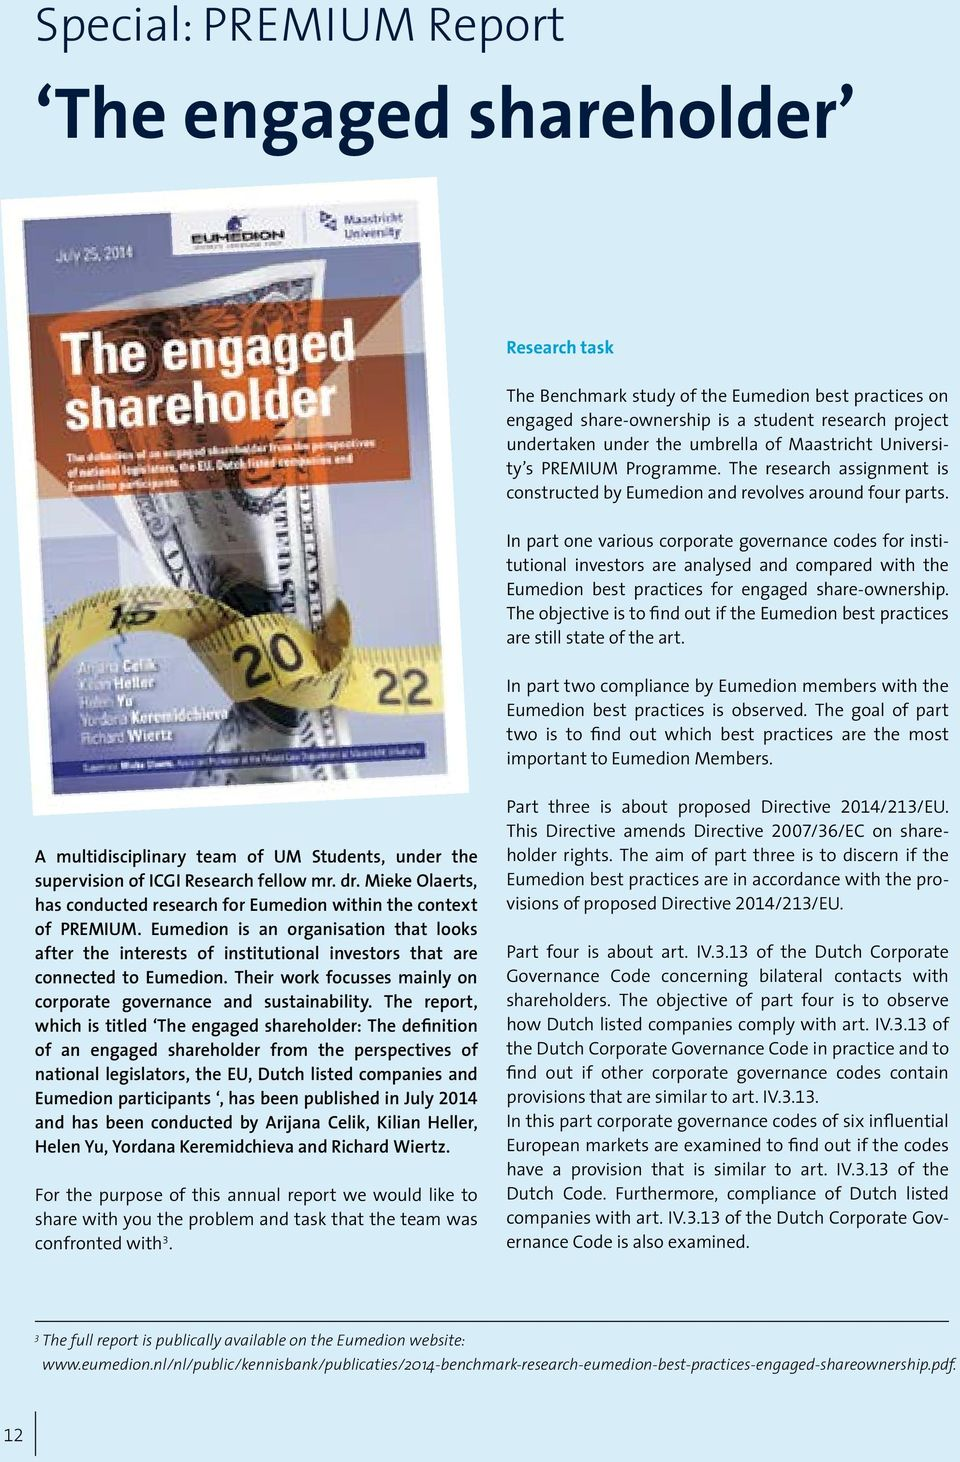 In part one various corporate governance codes for institutional investors are analysed and compared with the Eumedion best practices for engaged share-ownership.